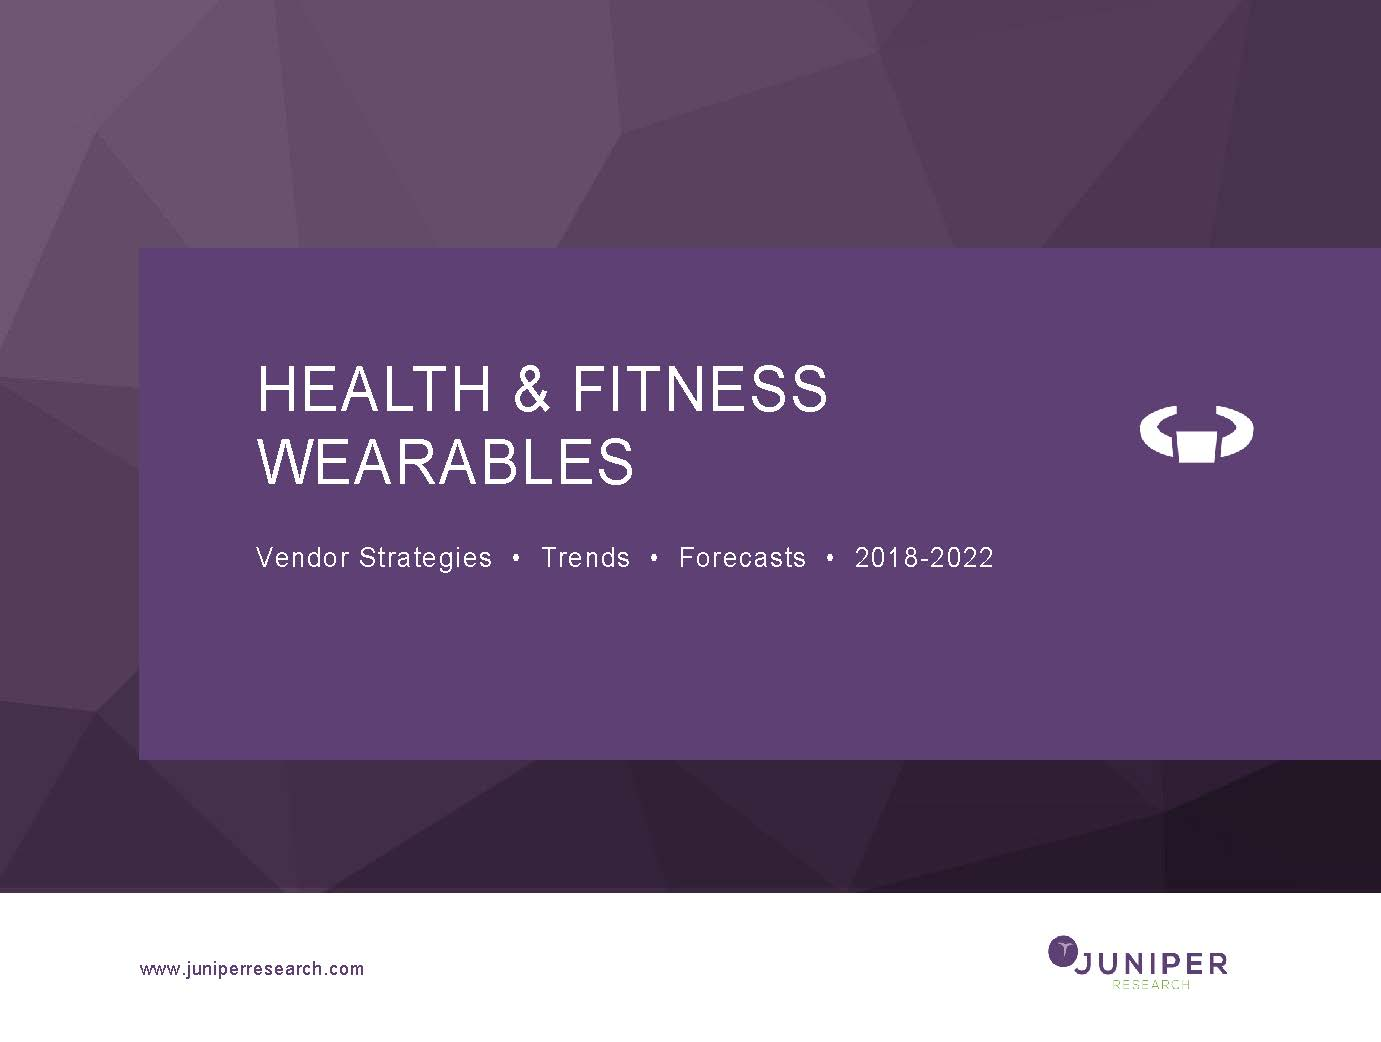 Health & Fitness Wearables